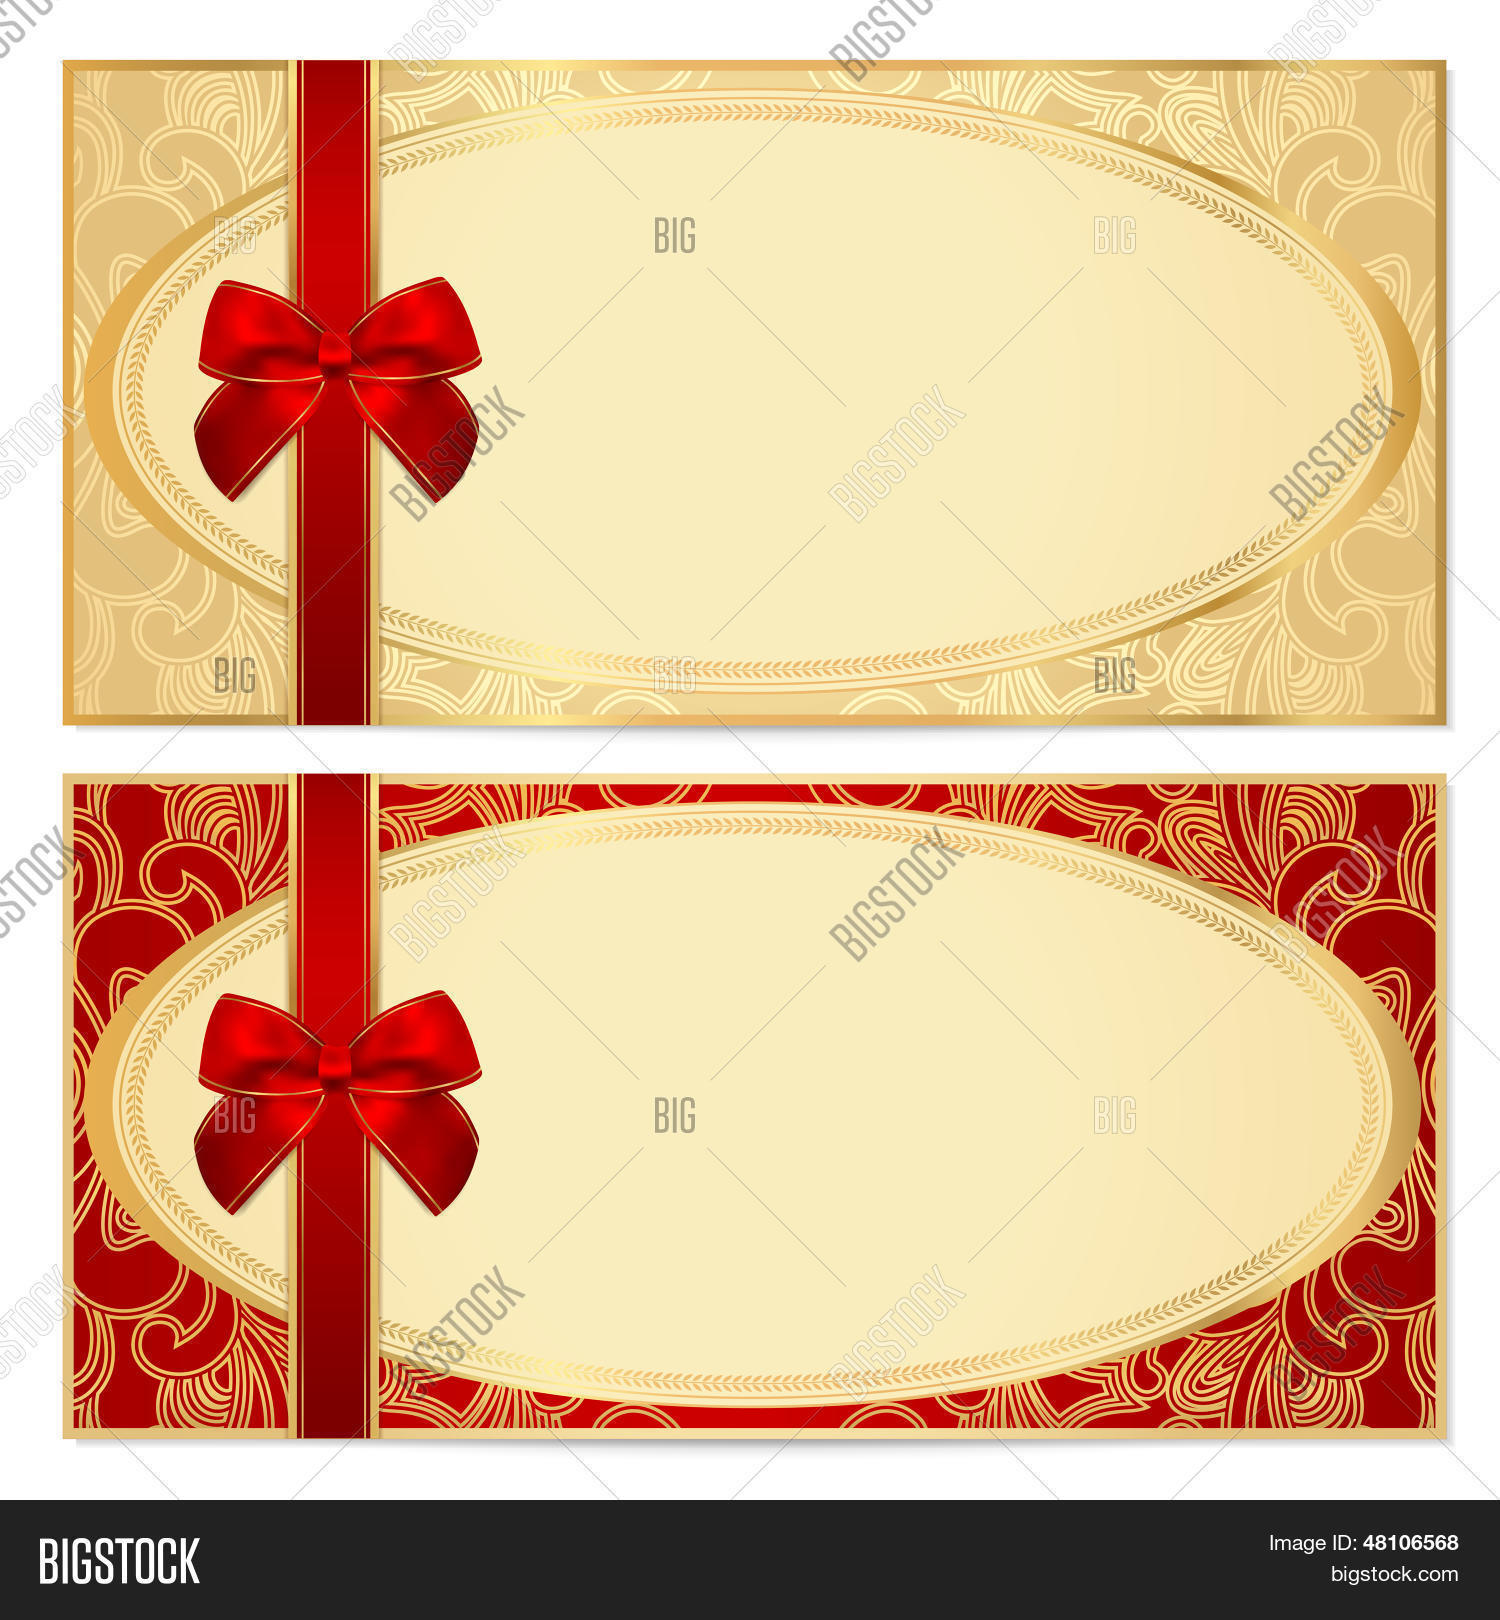 Voucher/ Gift Certificate / Coupon Vector & Photo | Bigstock